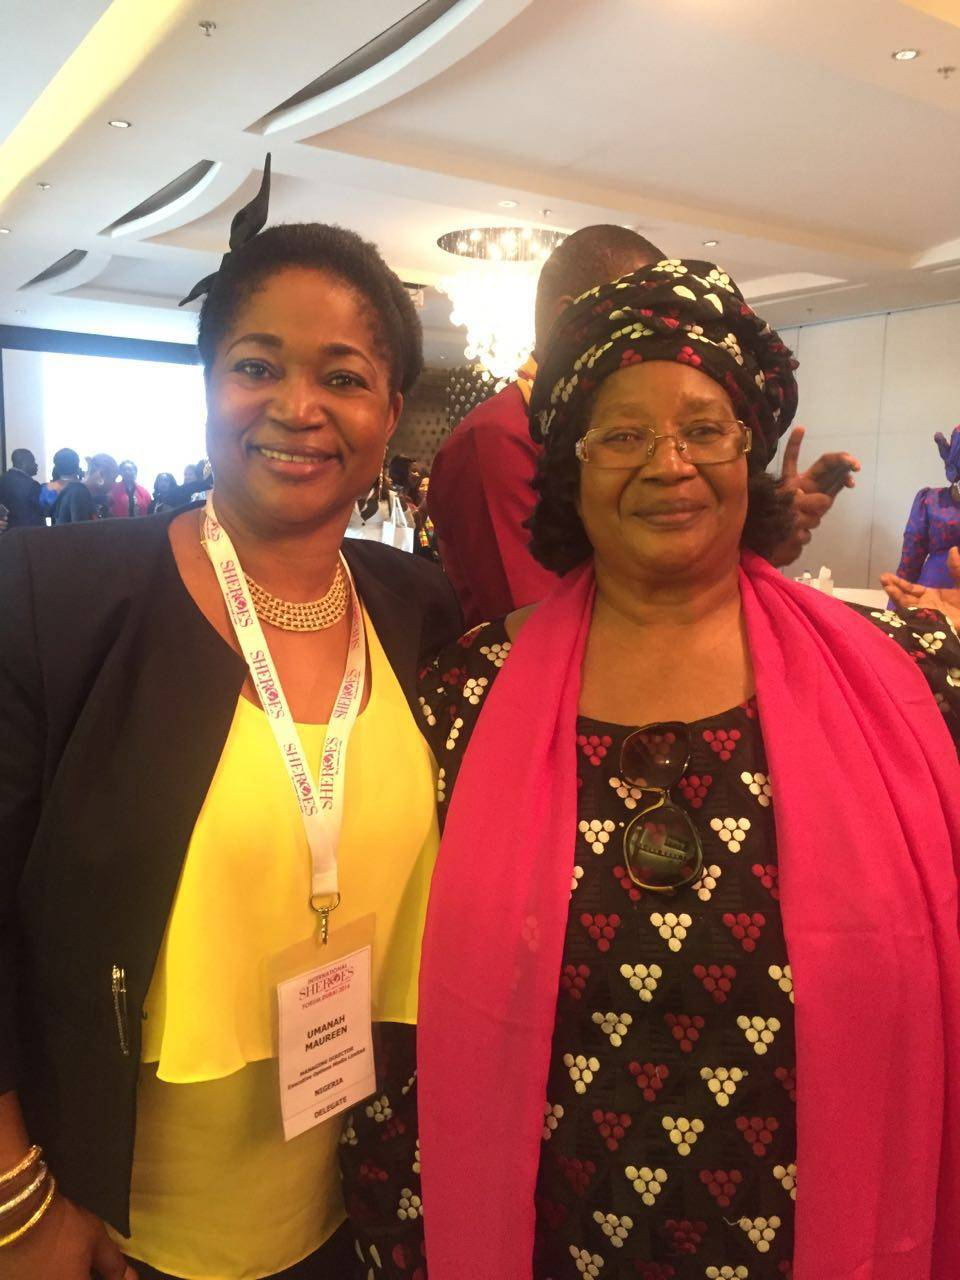 L-R Mrs Maureen Umanah, Editor-in-chief, Billboard World Magazine and Dr. Joyce Banda, Fmr. President, Malawi, at the SHEROES L-R Mrs Maureen Umanah, Editor-in-chief, Billboard World Magazine and Dr. Joyce Banda, Fmr. President, Malawi, at the SHEROES International Forum, Dubai. Forum, Dubai.